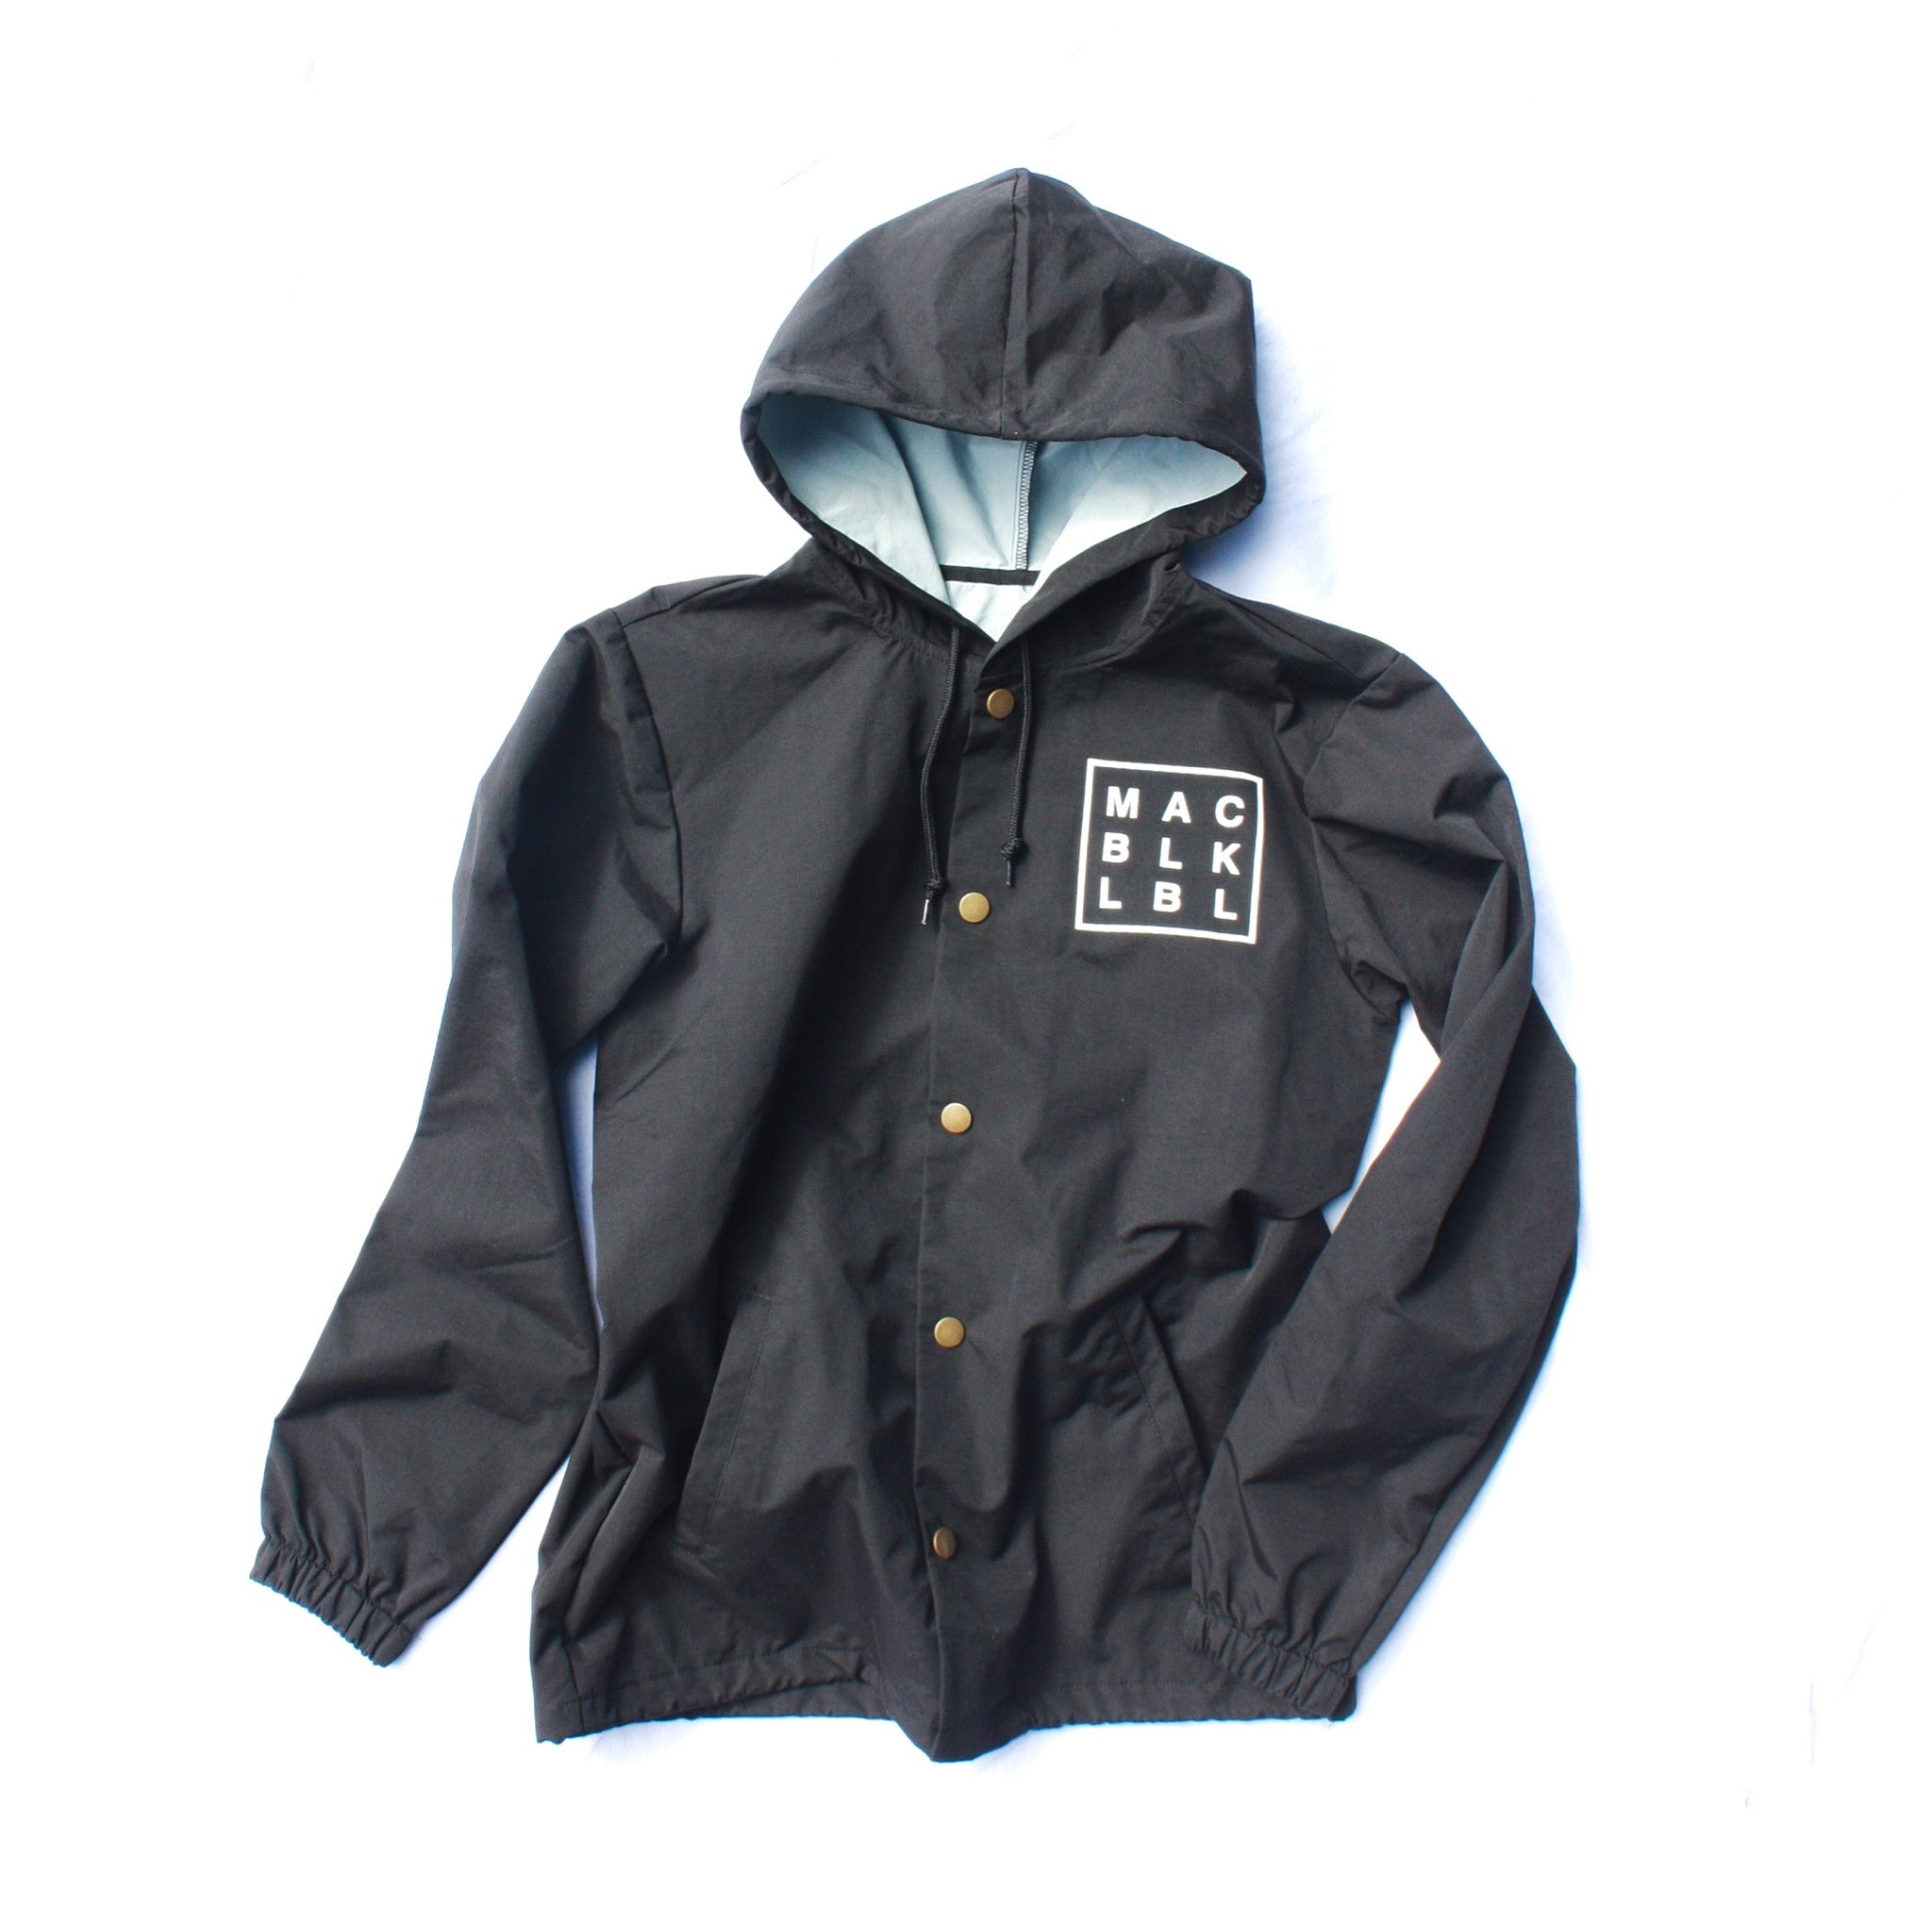 MAC BLK Rain Jacket